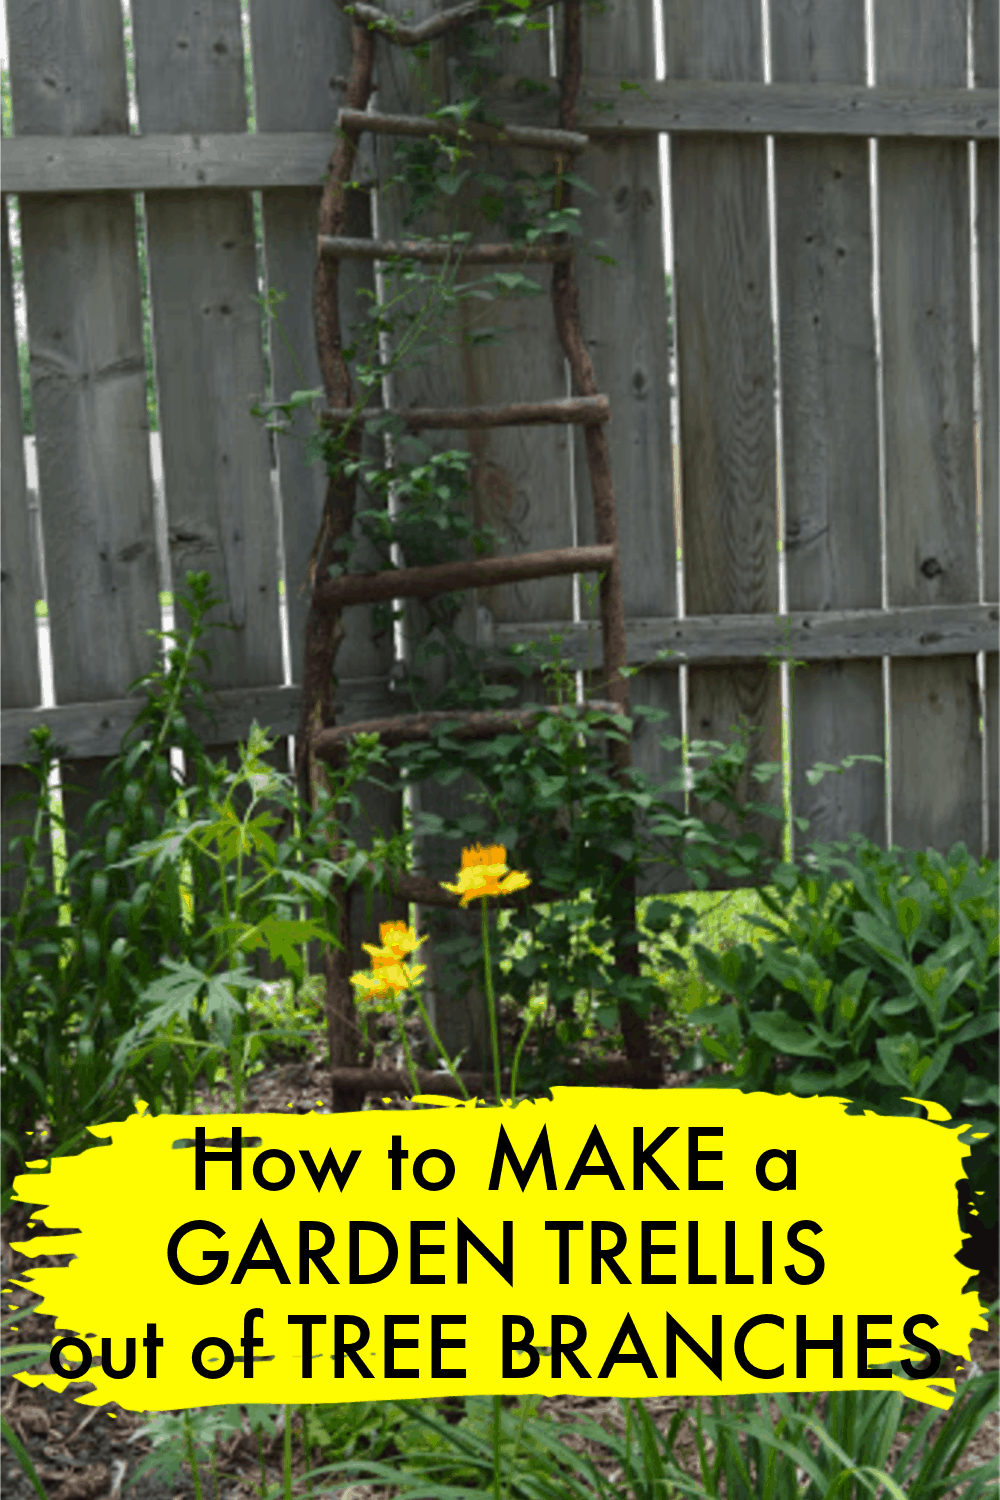 How to Make a Garden Trellis out of Tree Branches